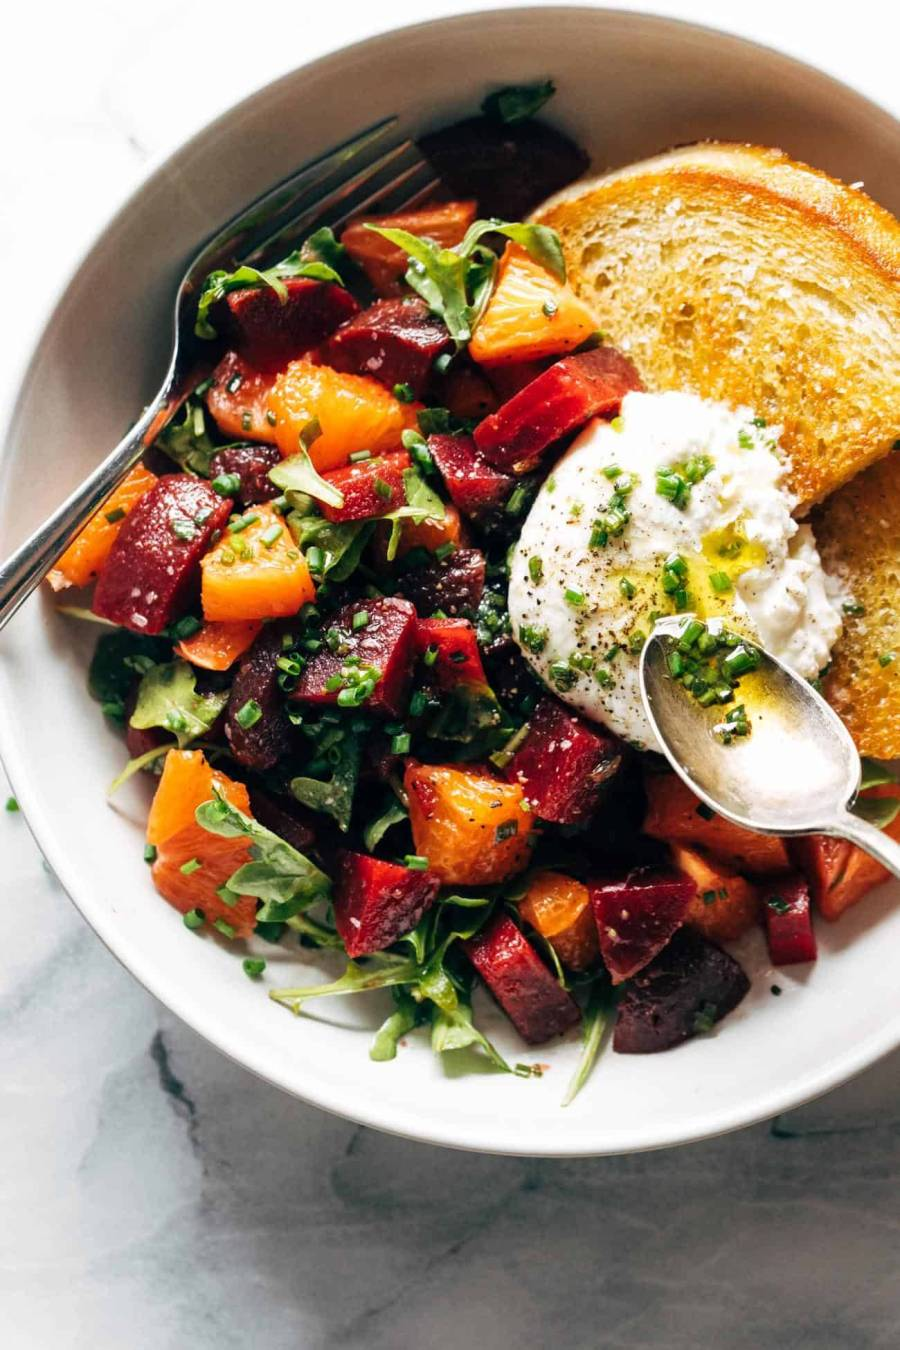 Beet and burrata salad in a bowl with fried bread